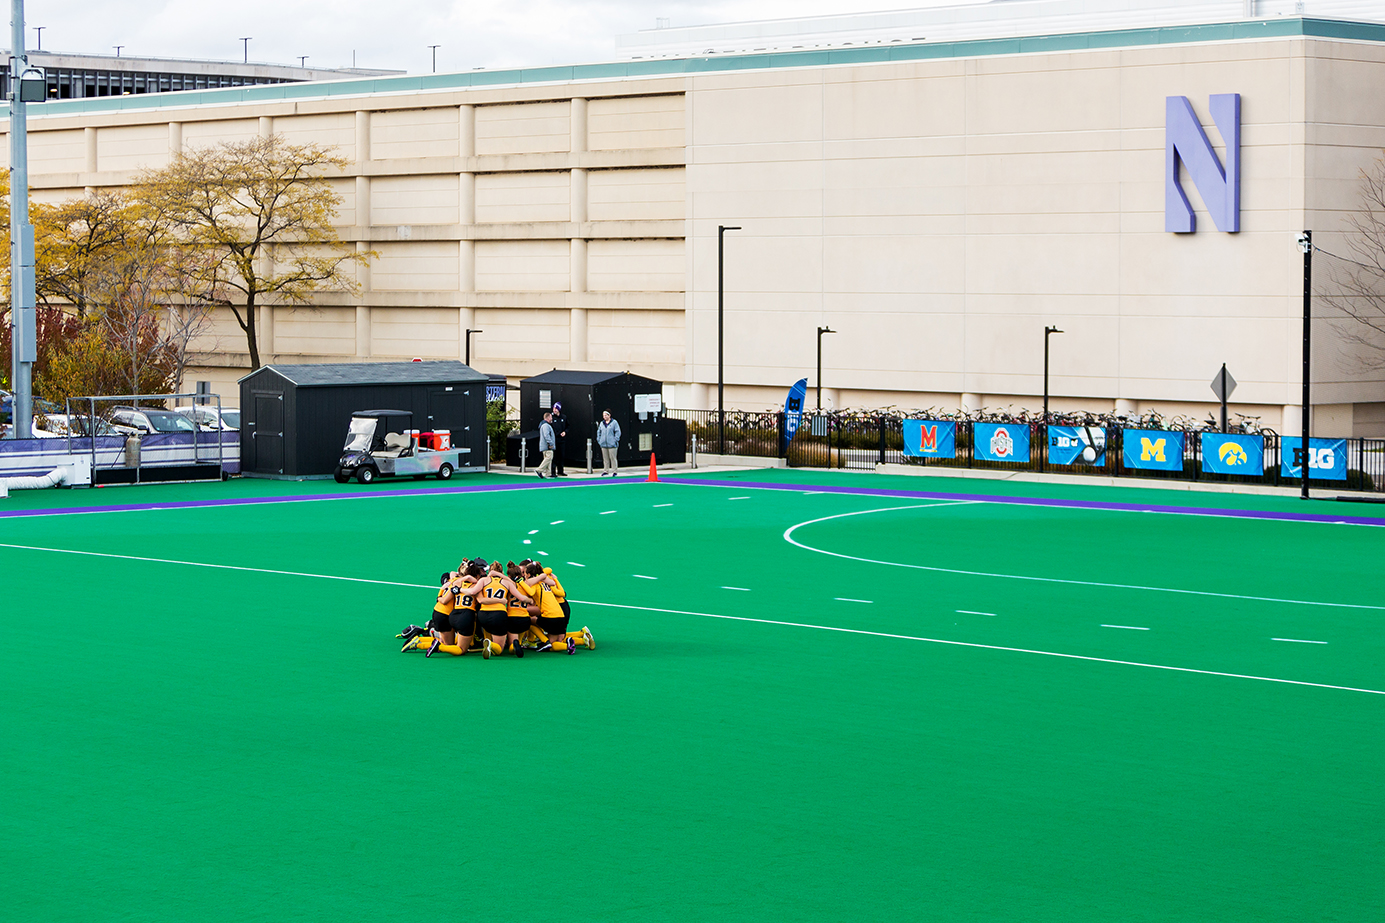 Iowa players huddle up before a penalty corner during the Semifinals in the Big Ten Field Hockey Tournament at Lakeside Field in Evanston, IL on Friday, Nov. 2, 2018. The no. 8 ranked Hawkeyes defeated the no. 7 ranked Wolverines 2-1.